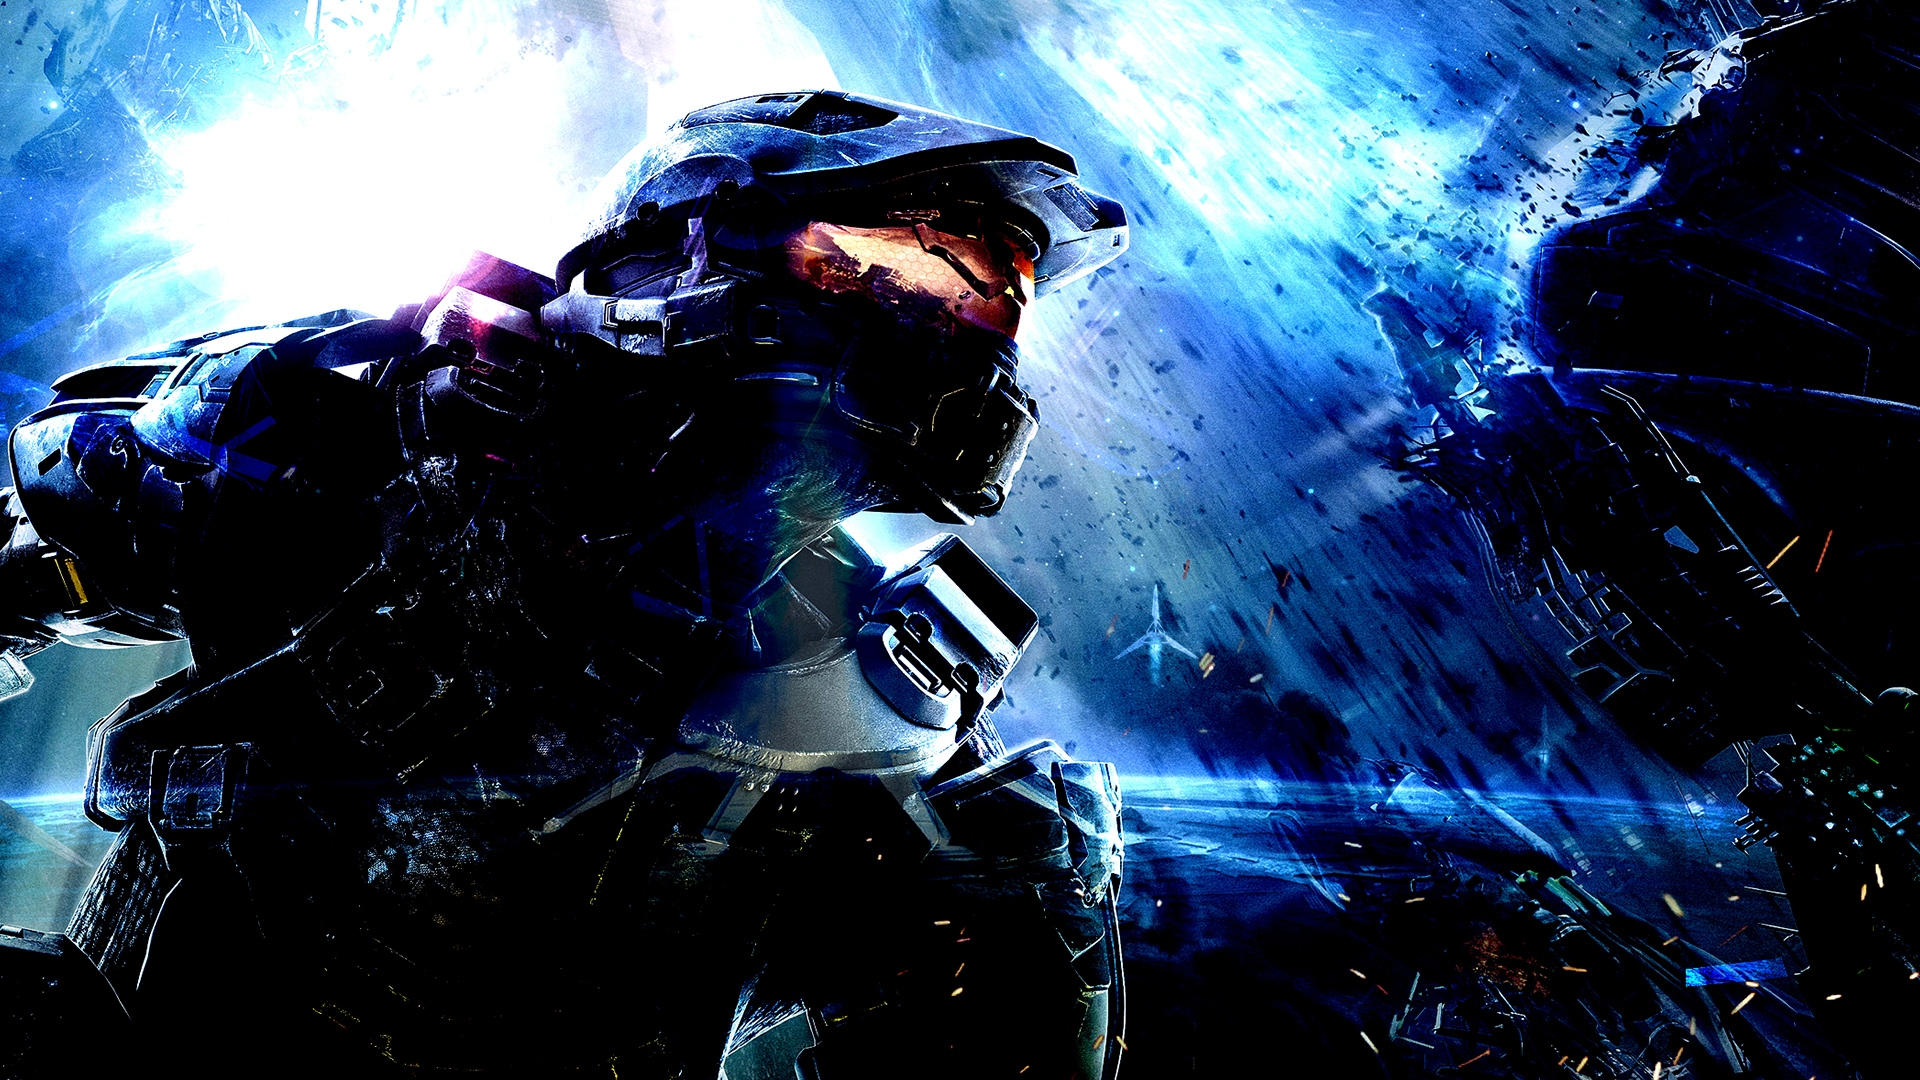 Halo 4 E3 Wallpaper - Wallpaper Pictures Gallery